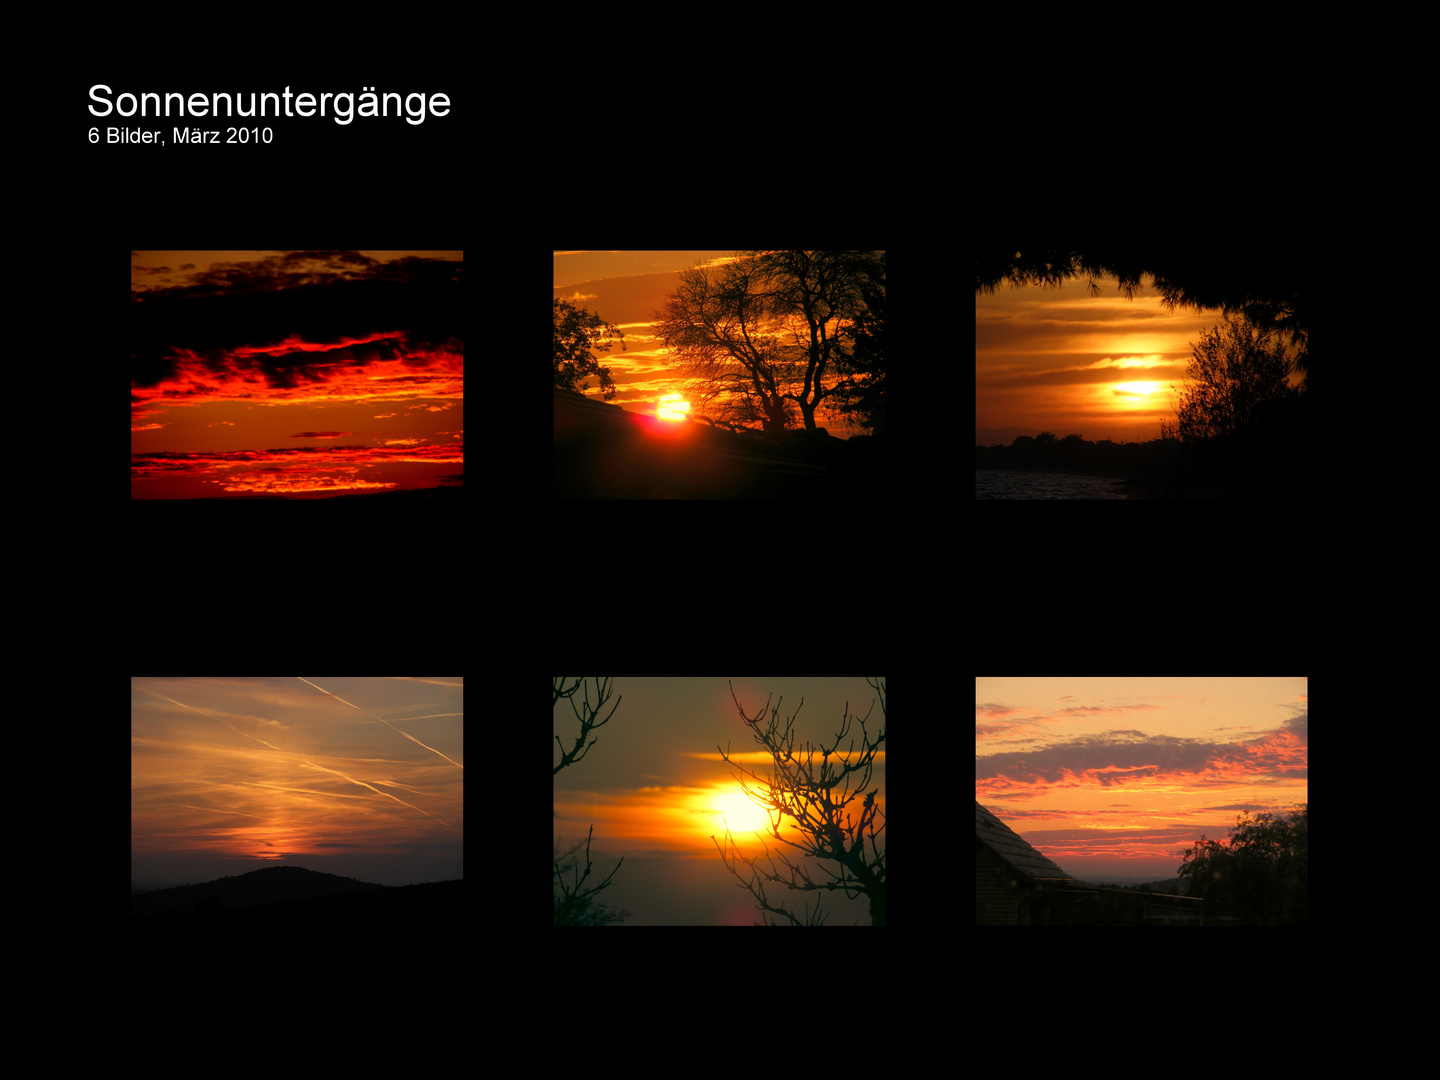 Collage-Sonnenuntergänge 1